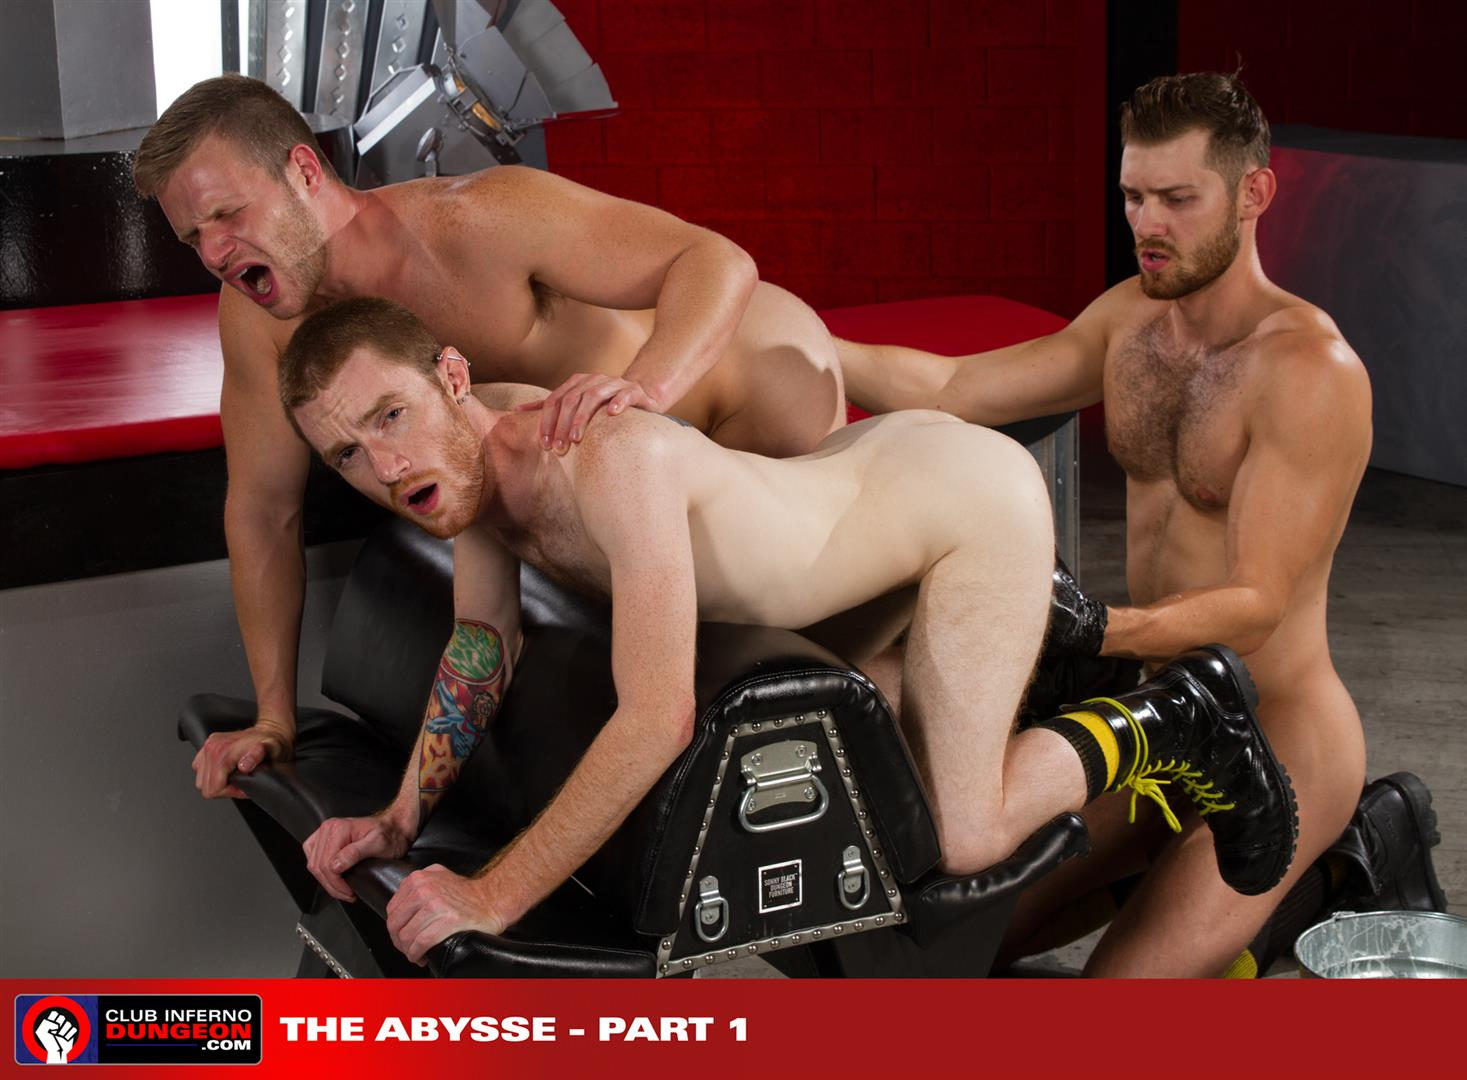 Clun Inferno Dungeon Brian Bonds and Seamus OReilly and Jacob Peterson Rimming and Fisting Amateur Gay Porn 14 Jacob Peterson Double Fists Brian Bonds and Seamus OReilly